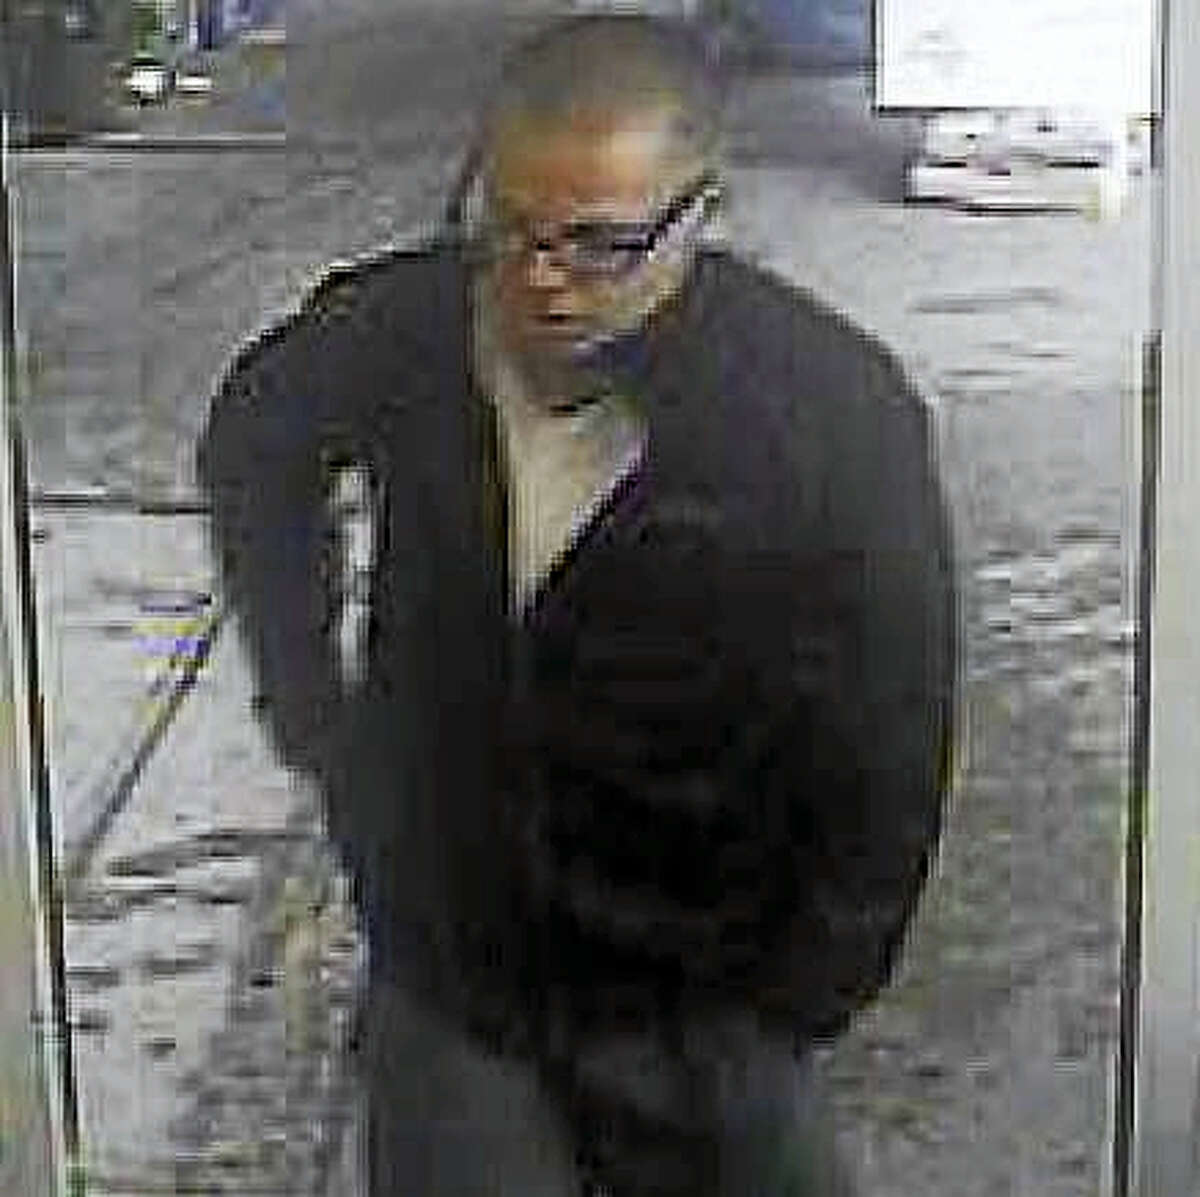 Police are asking the public for help finding a man who allegedly stole hundreds of dollars' worth of products from the Clinton Stop & Shop. The man reportedly fled in a dark-colored sedan.